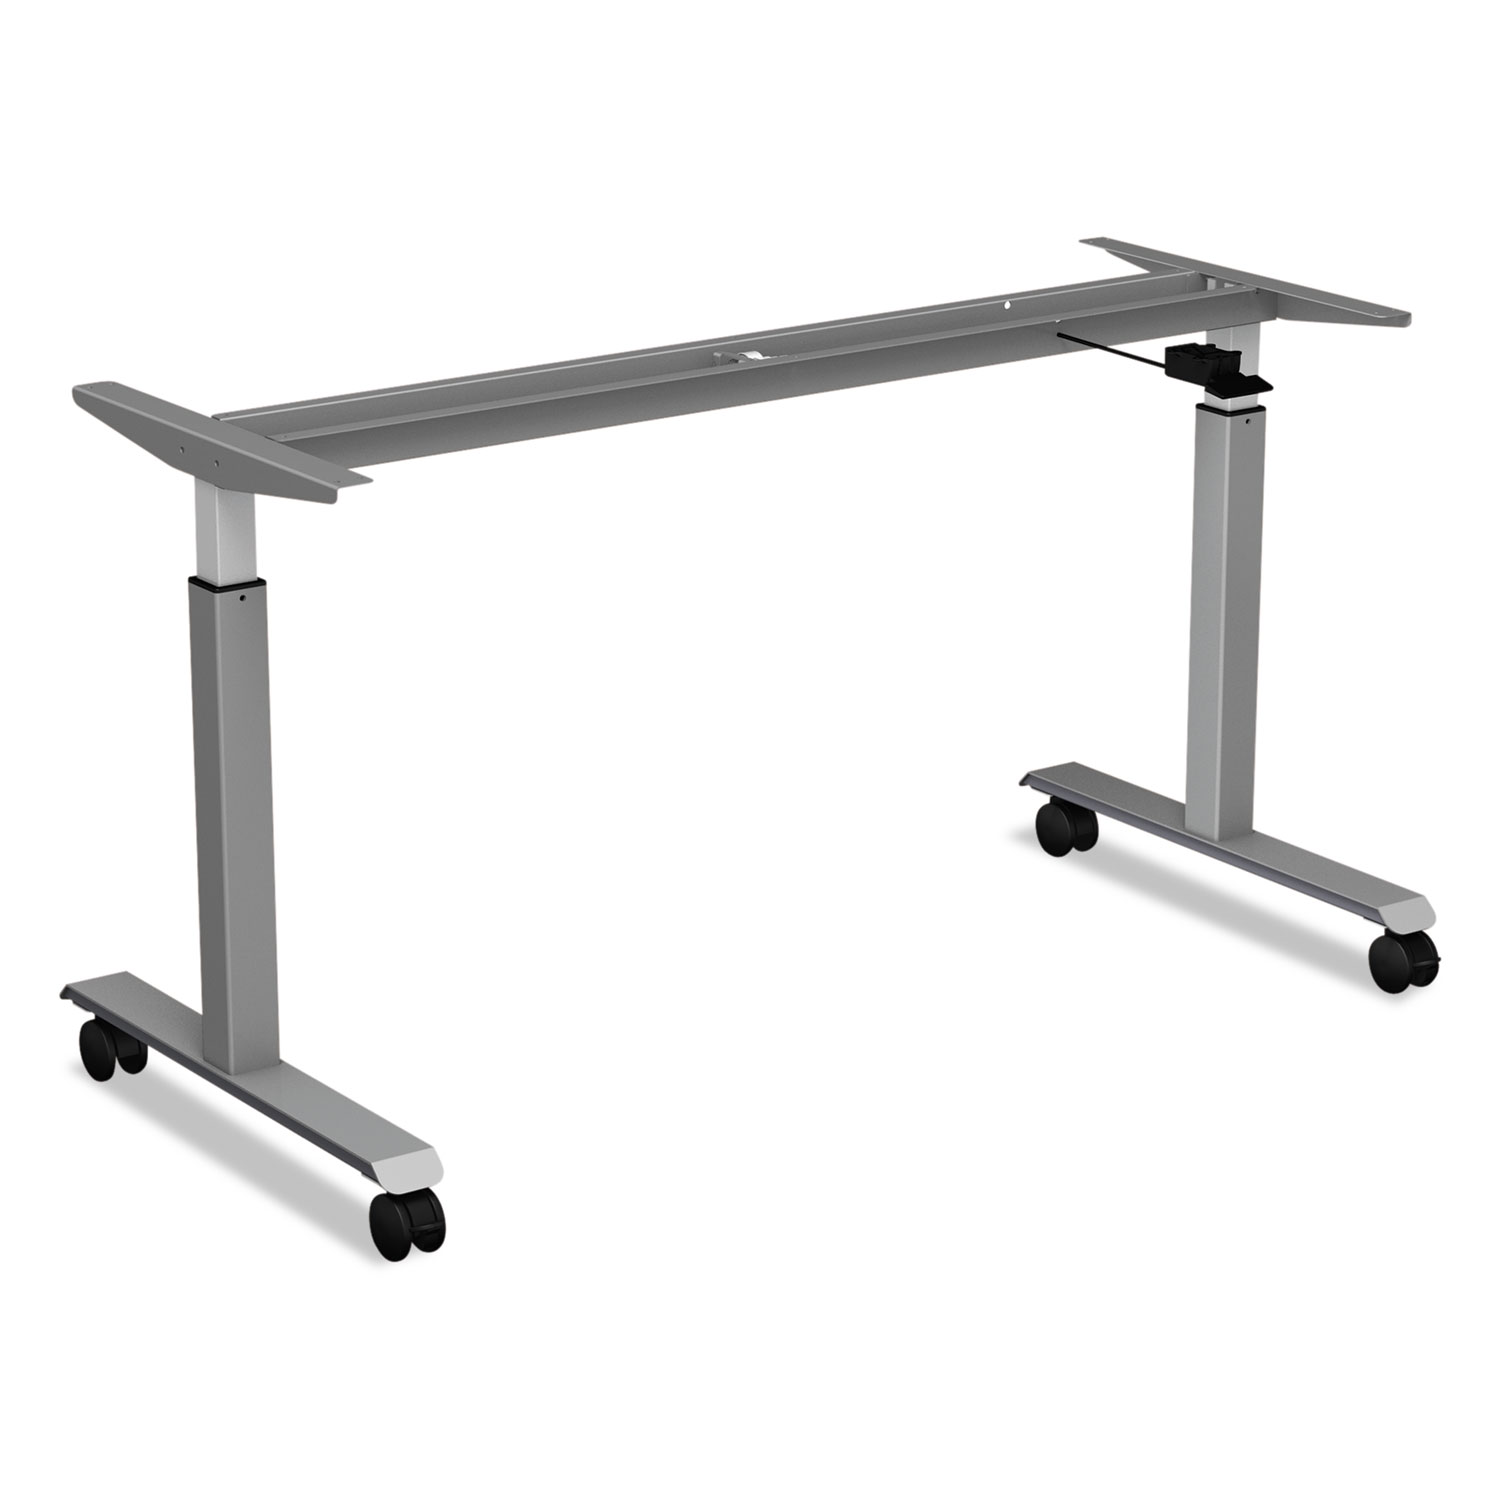 com aluminum adjustable made cool desk kitchen stand dining amazon living legs dp up l of light weight